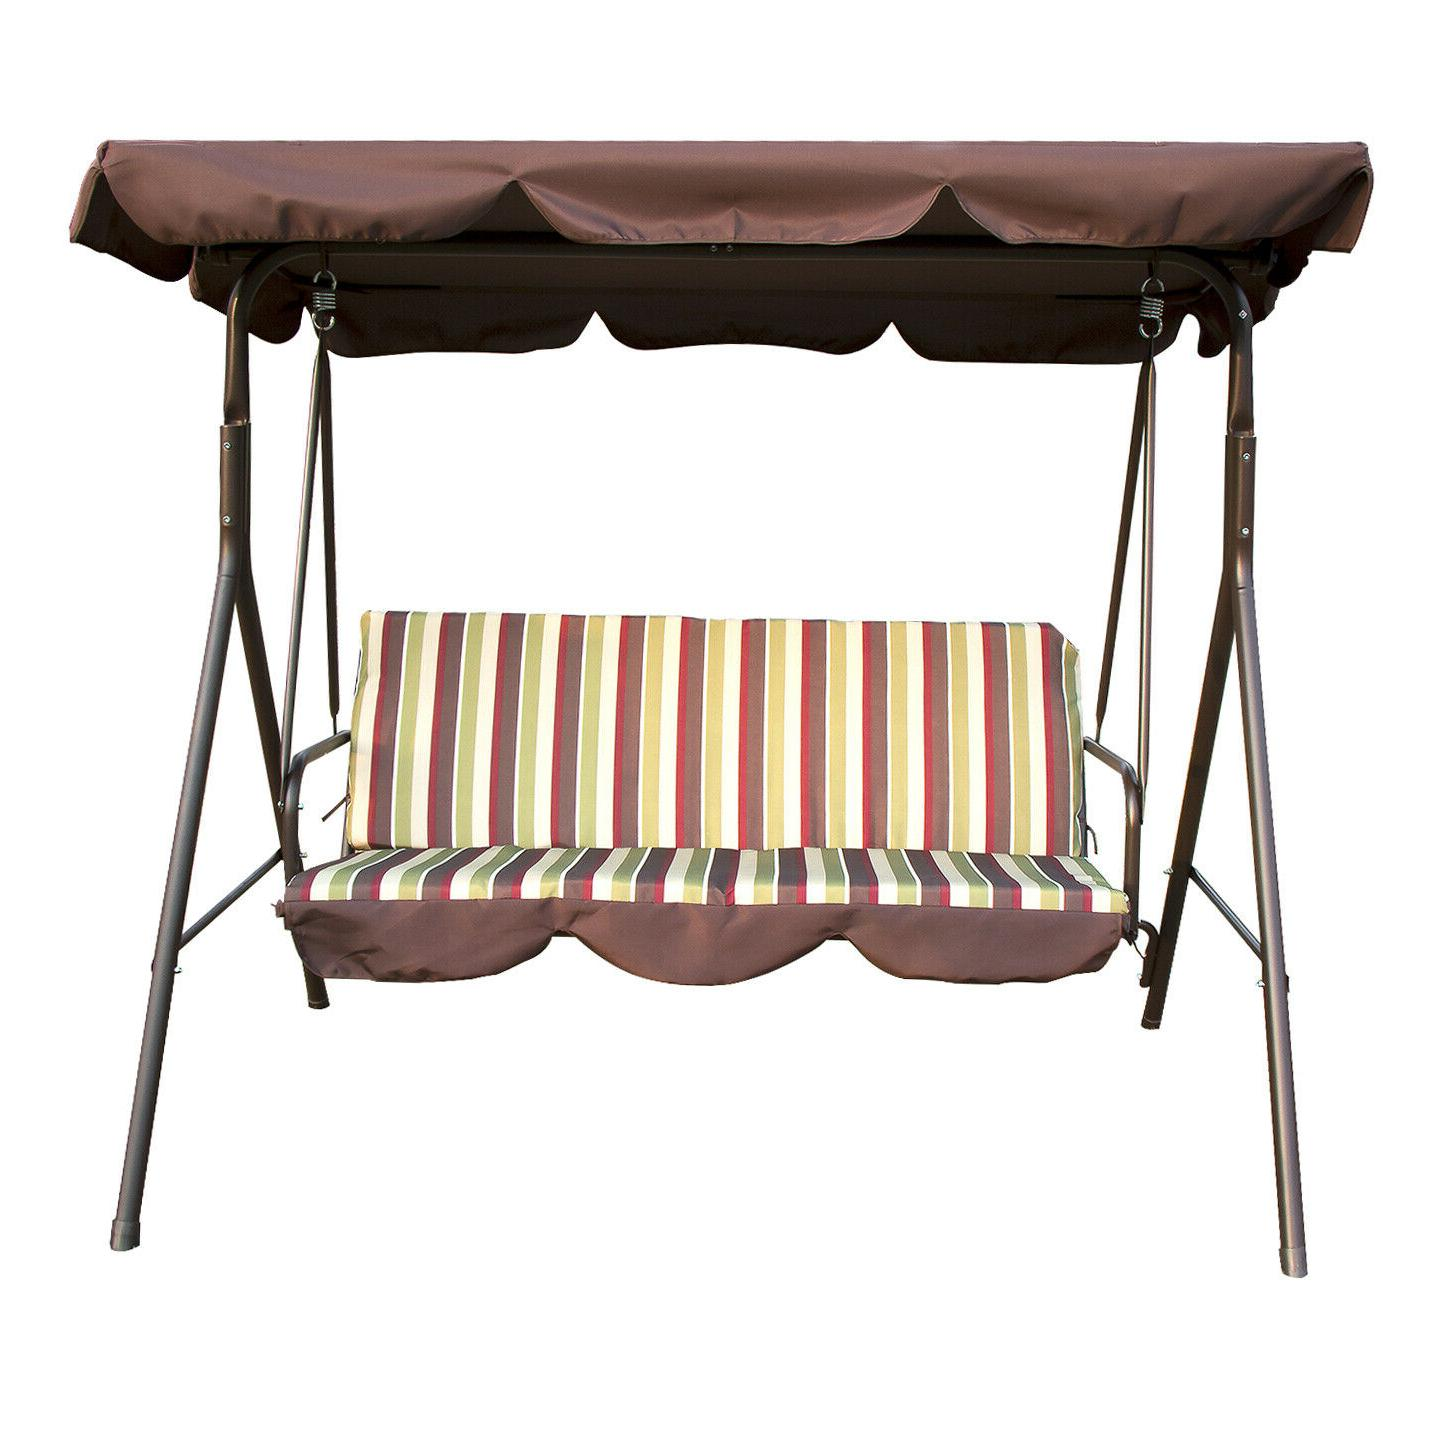 3 seat canopy swing chair